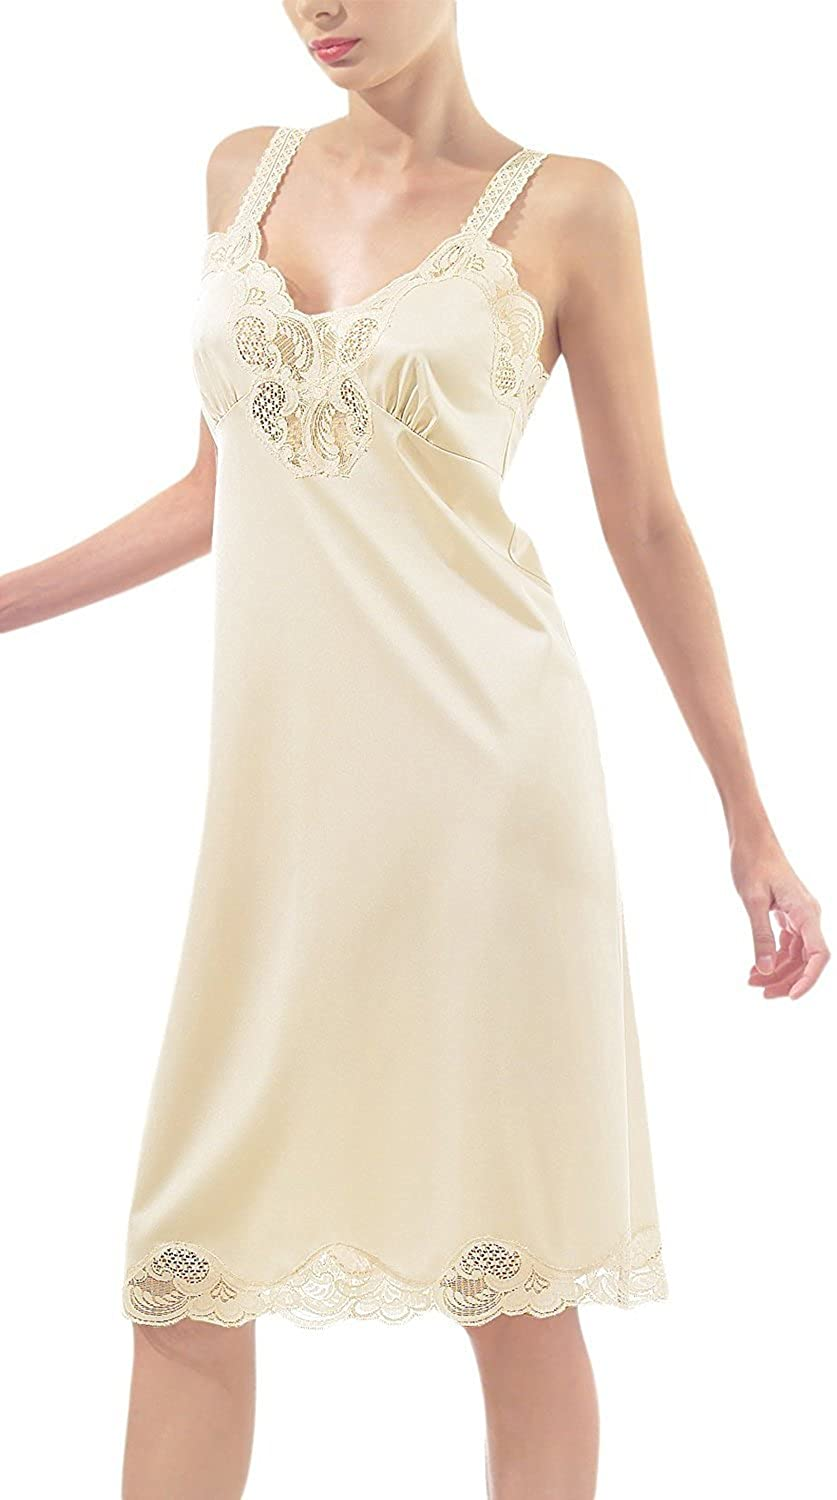 Under Moments Non- Cling Full Slip with Adjustable Straps Beige-36 UM-2012